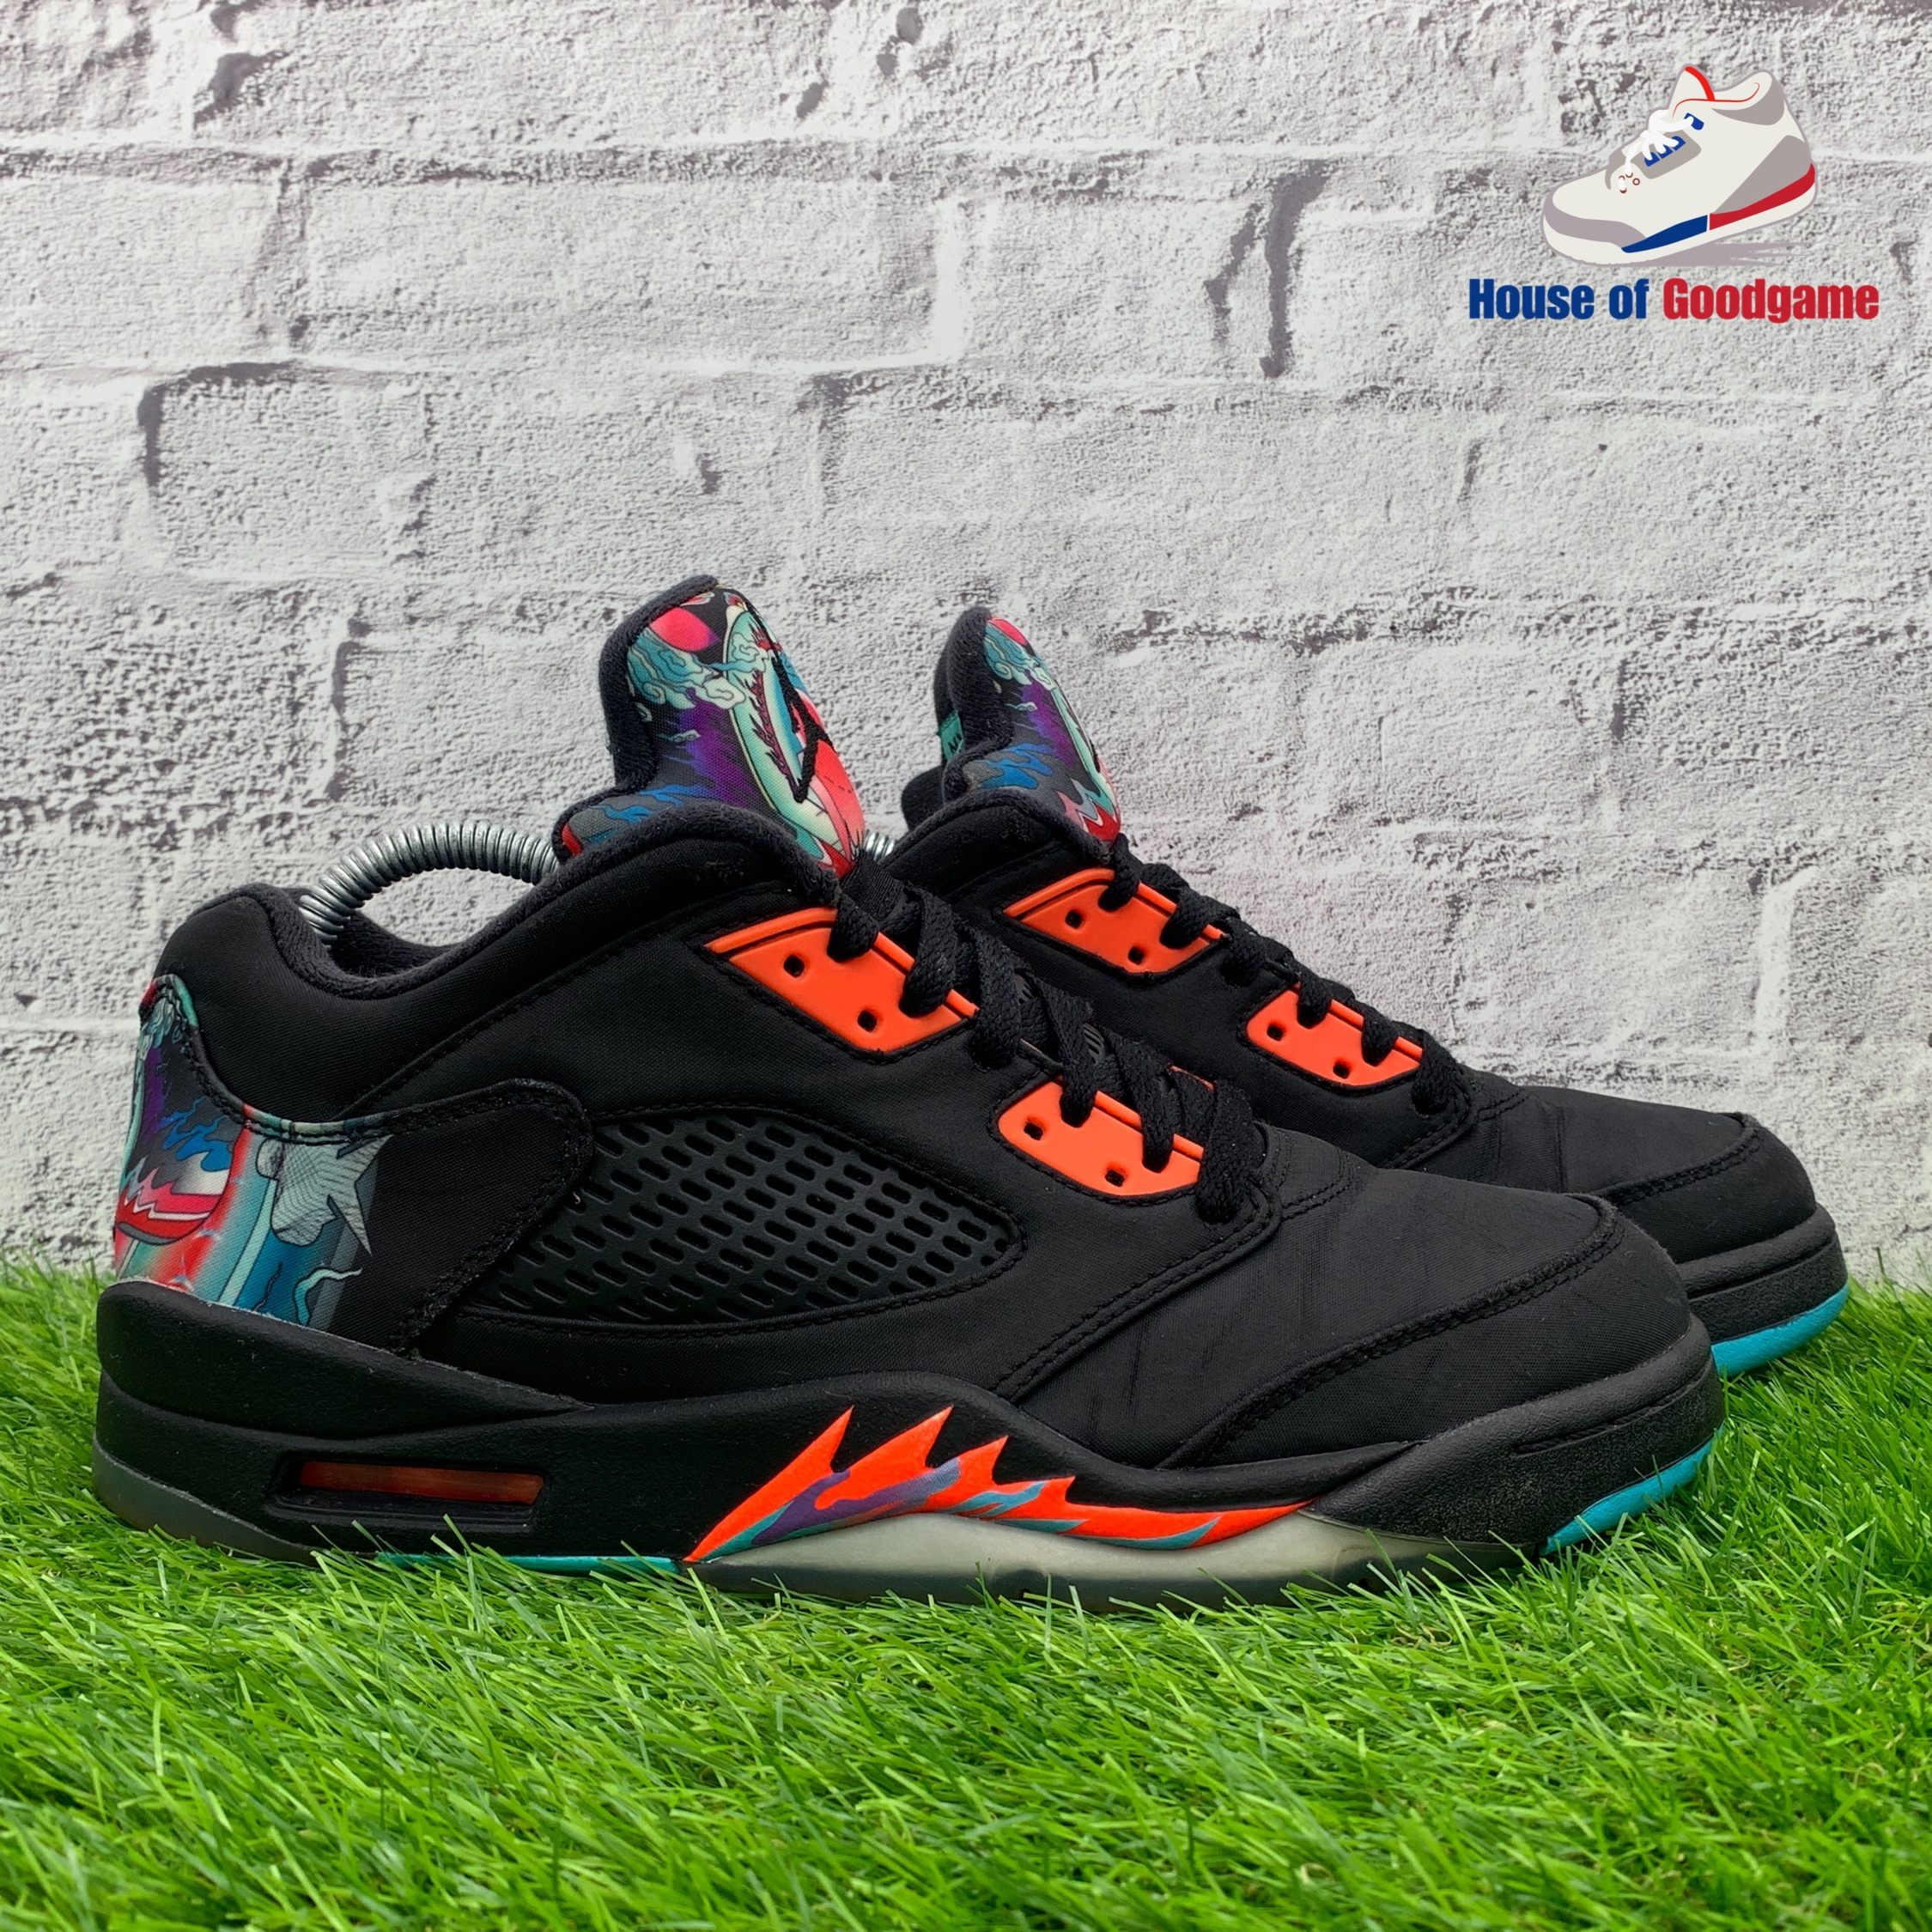 innovative design d8061 c9b6a Air Jordan 5 Retro Low 'Chinese New Year'